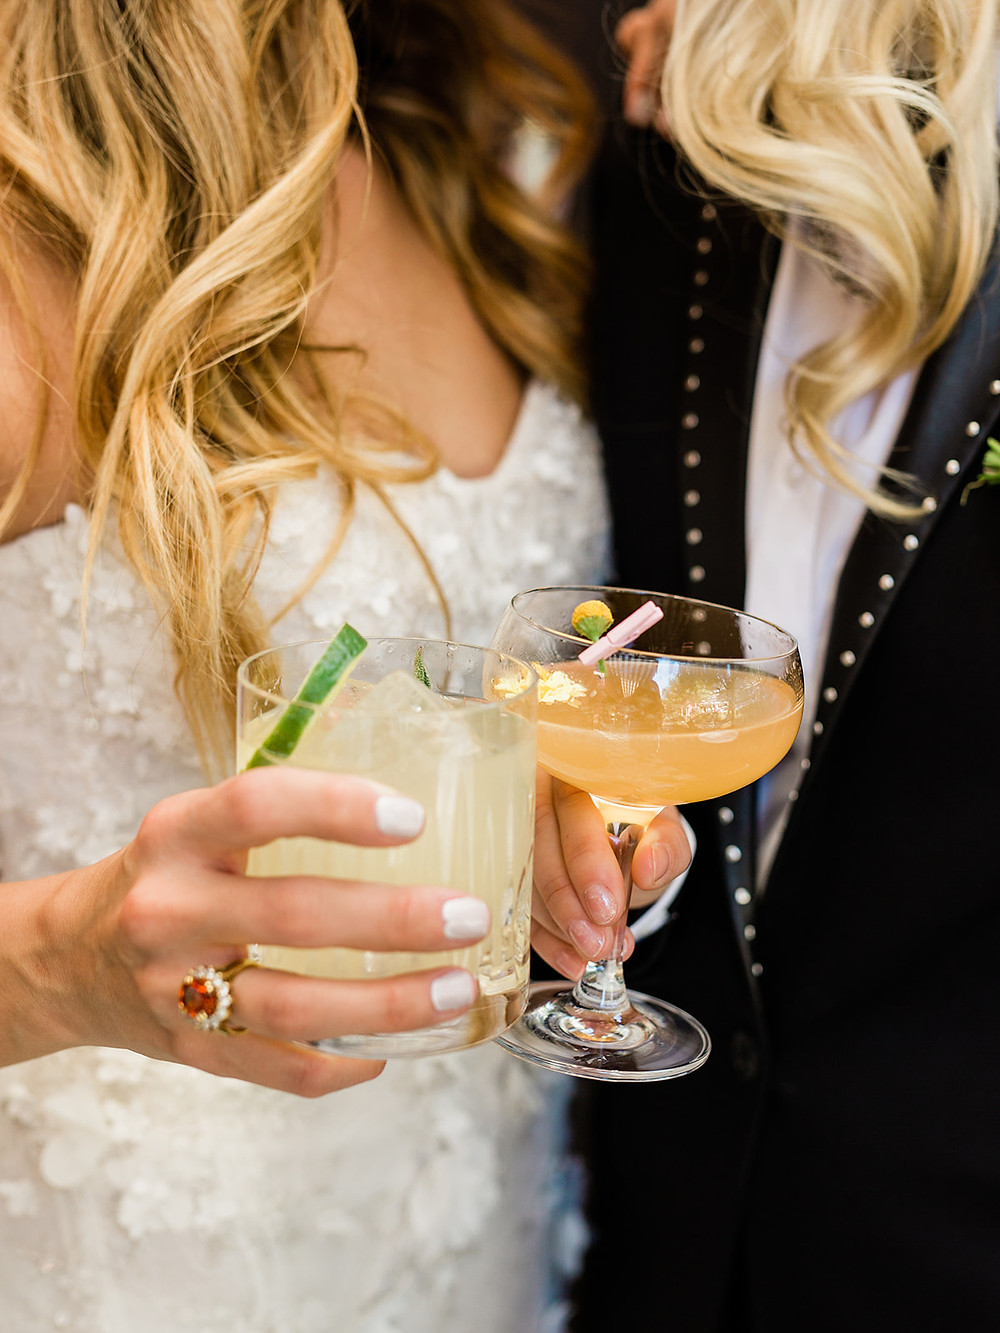 Two brides clink glasses after getting married - Modern Moroccan Desert Glam Editorial - LGBTQ Wedding Editoiral - Wedding Design Inspiration - Muted Desert Tones - Modern Glam Jungle Chic